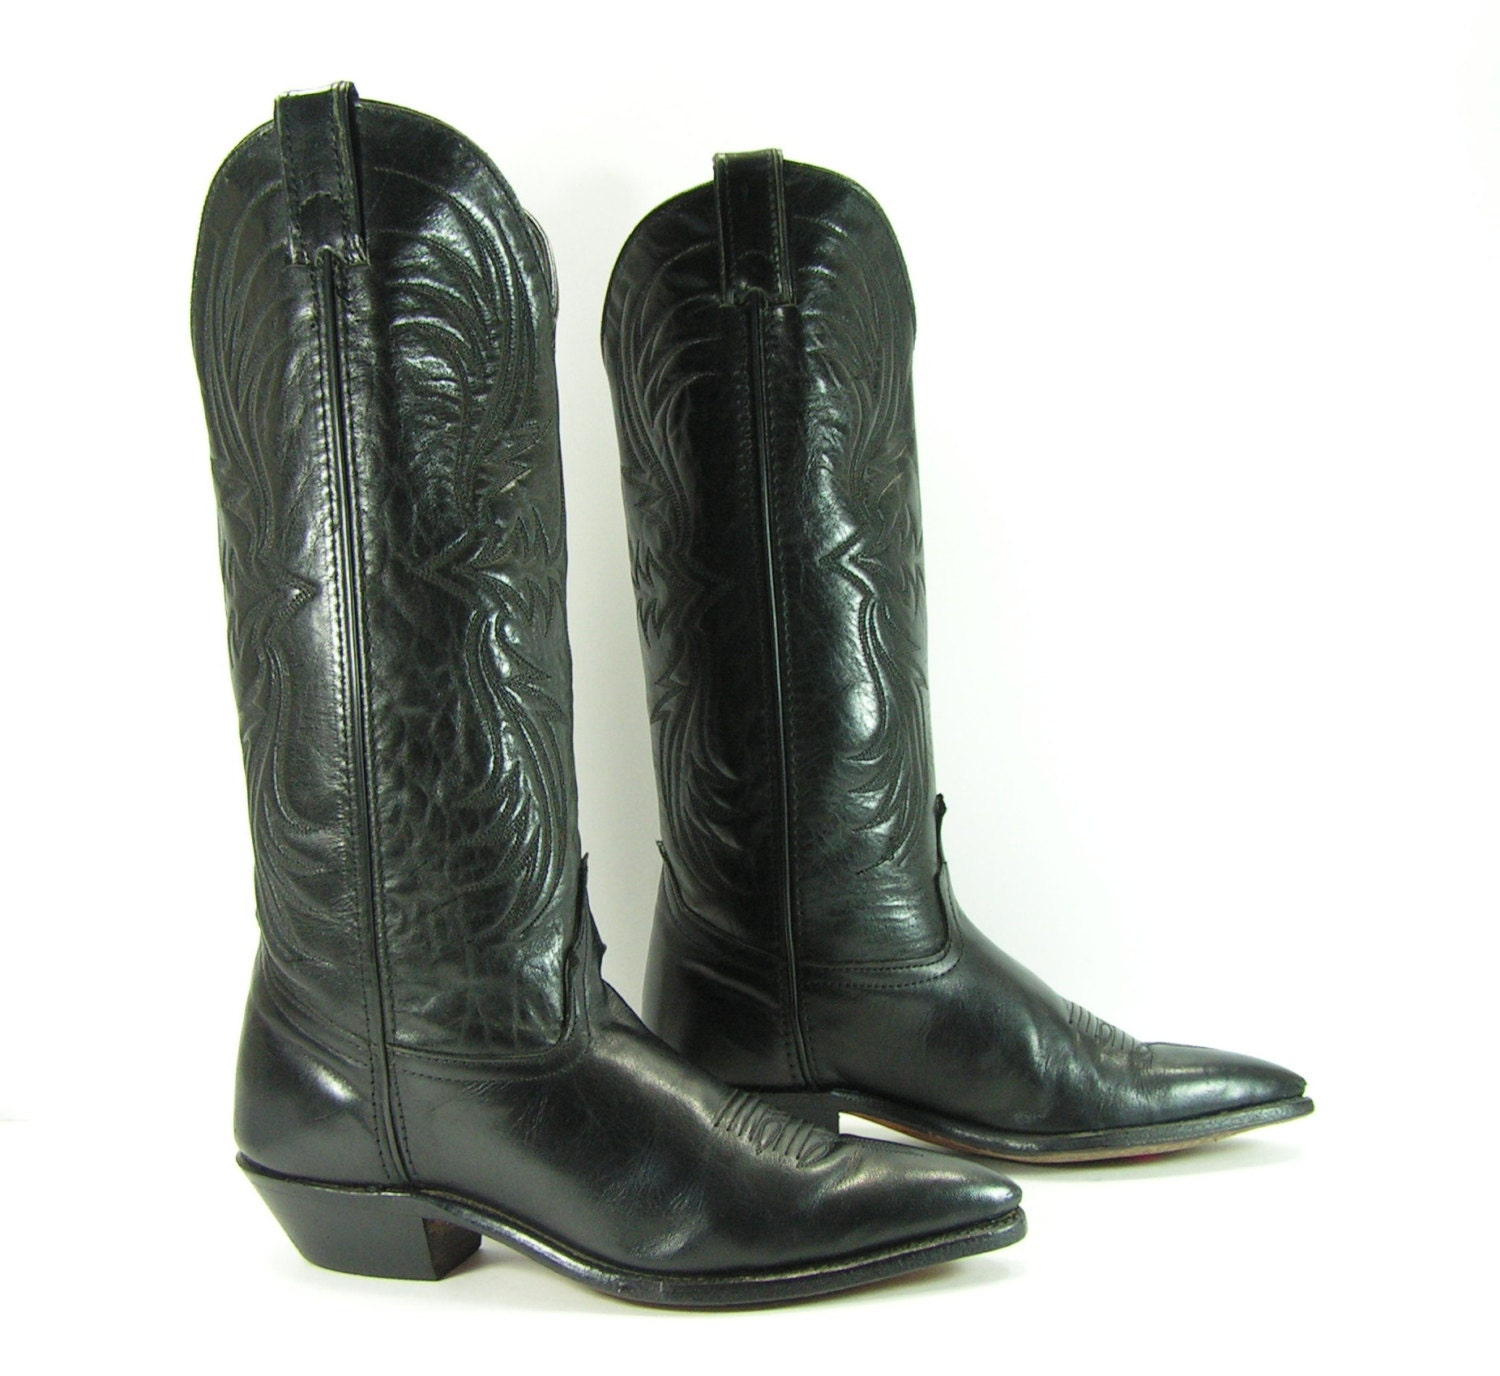 black cowboy boots womens 6 5 m b vintage by